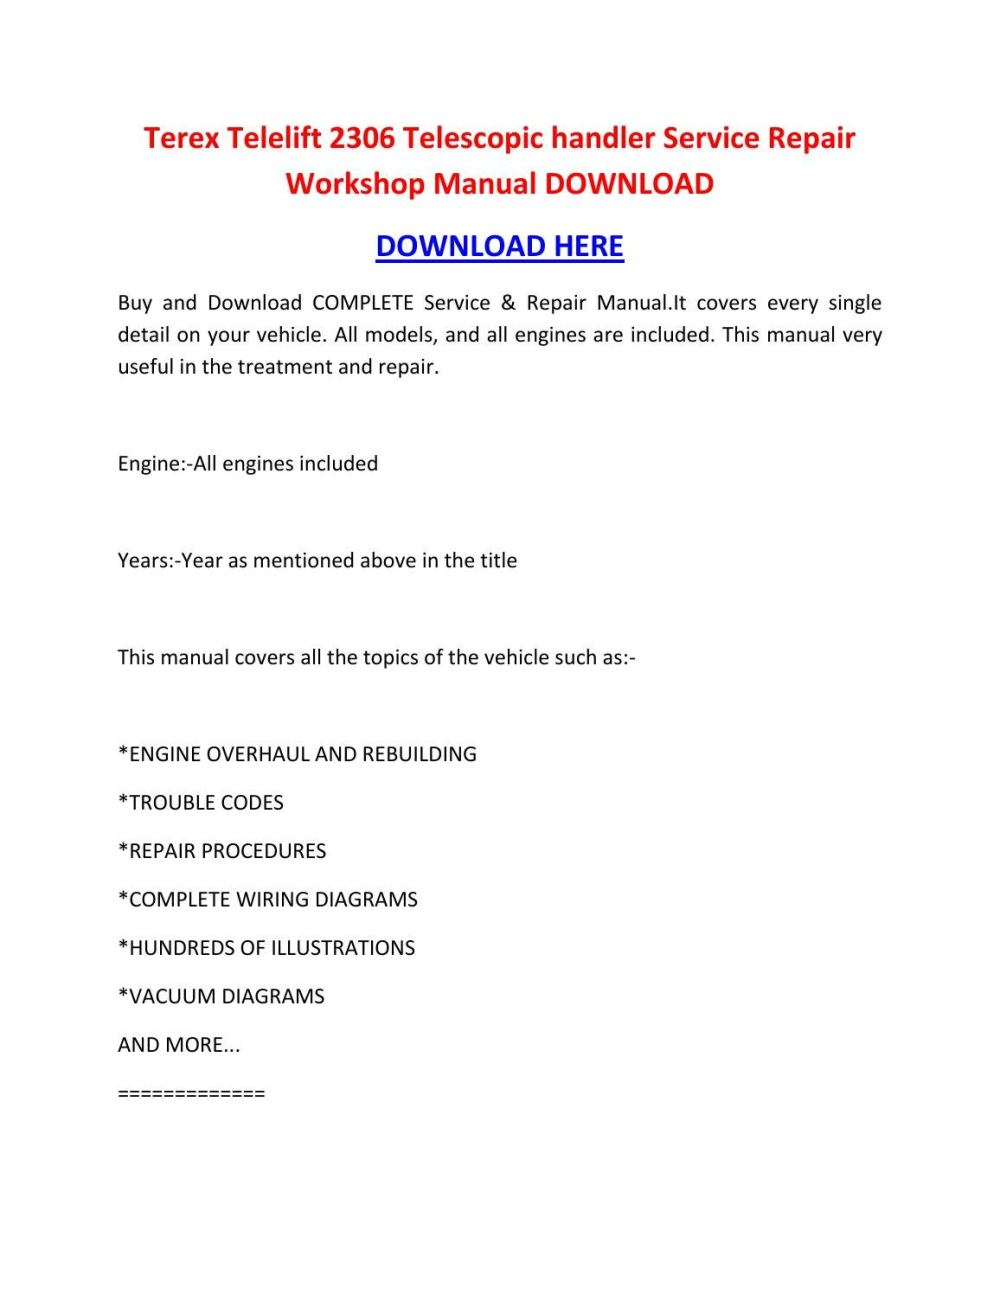 medium resolution of terex telelift 2306 telescopic handler service repair workshop manual download by sheffieldbronsonipqgz issuu